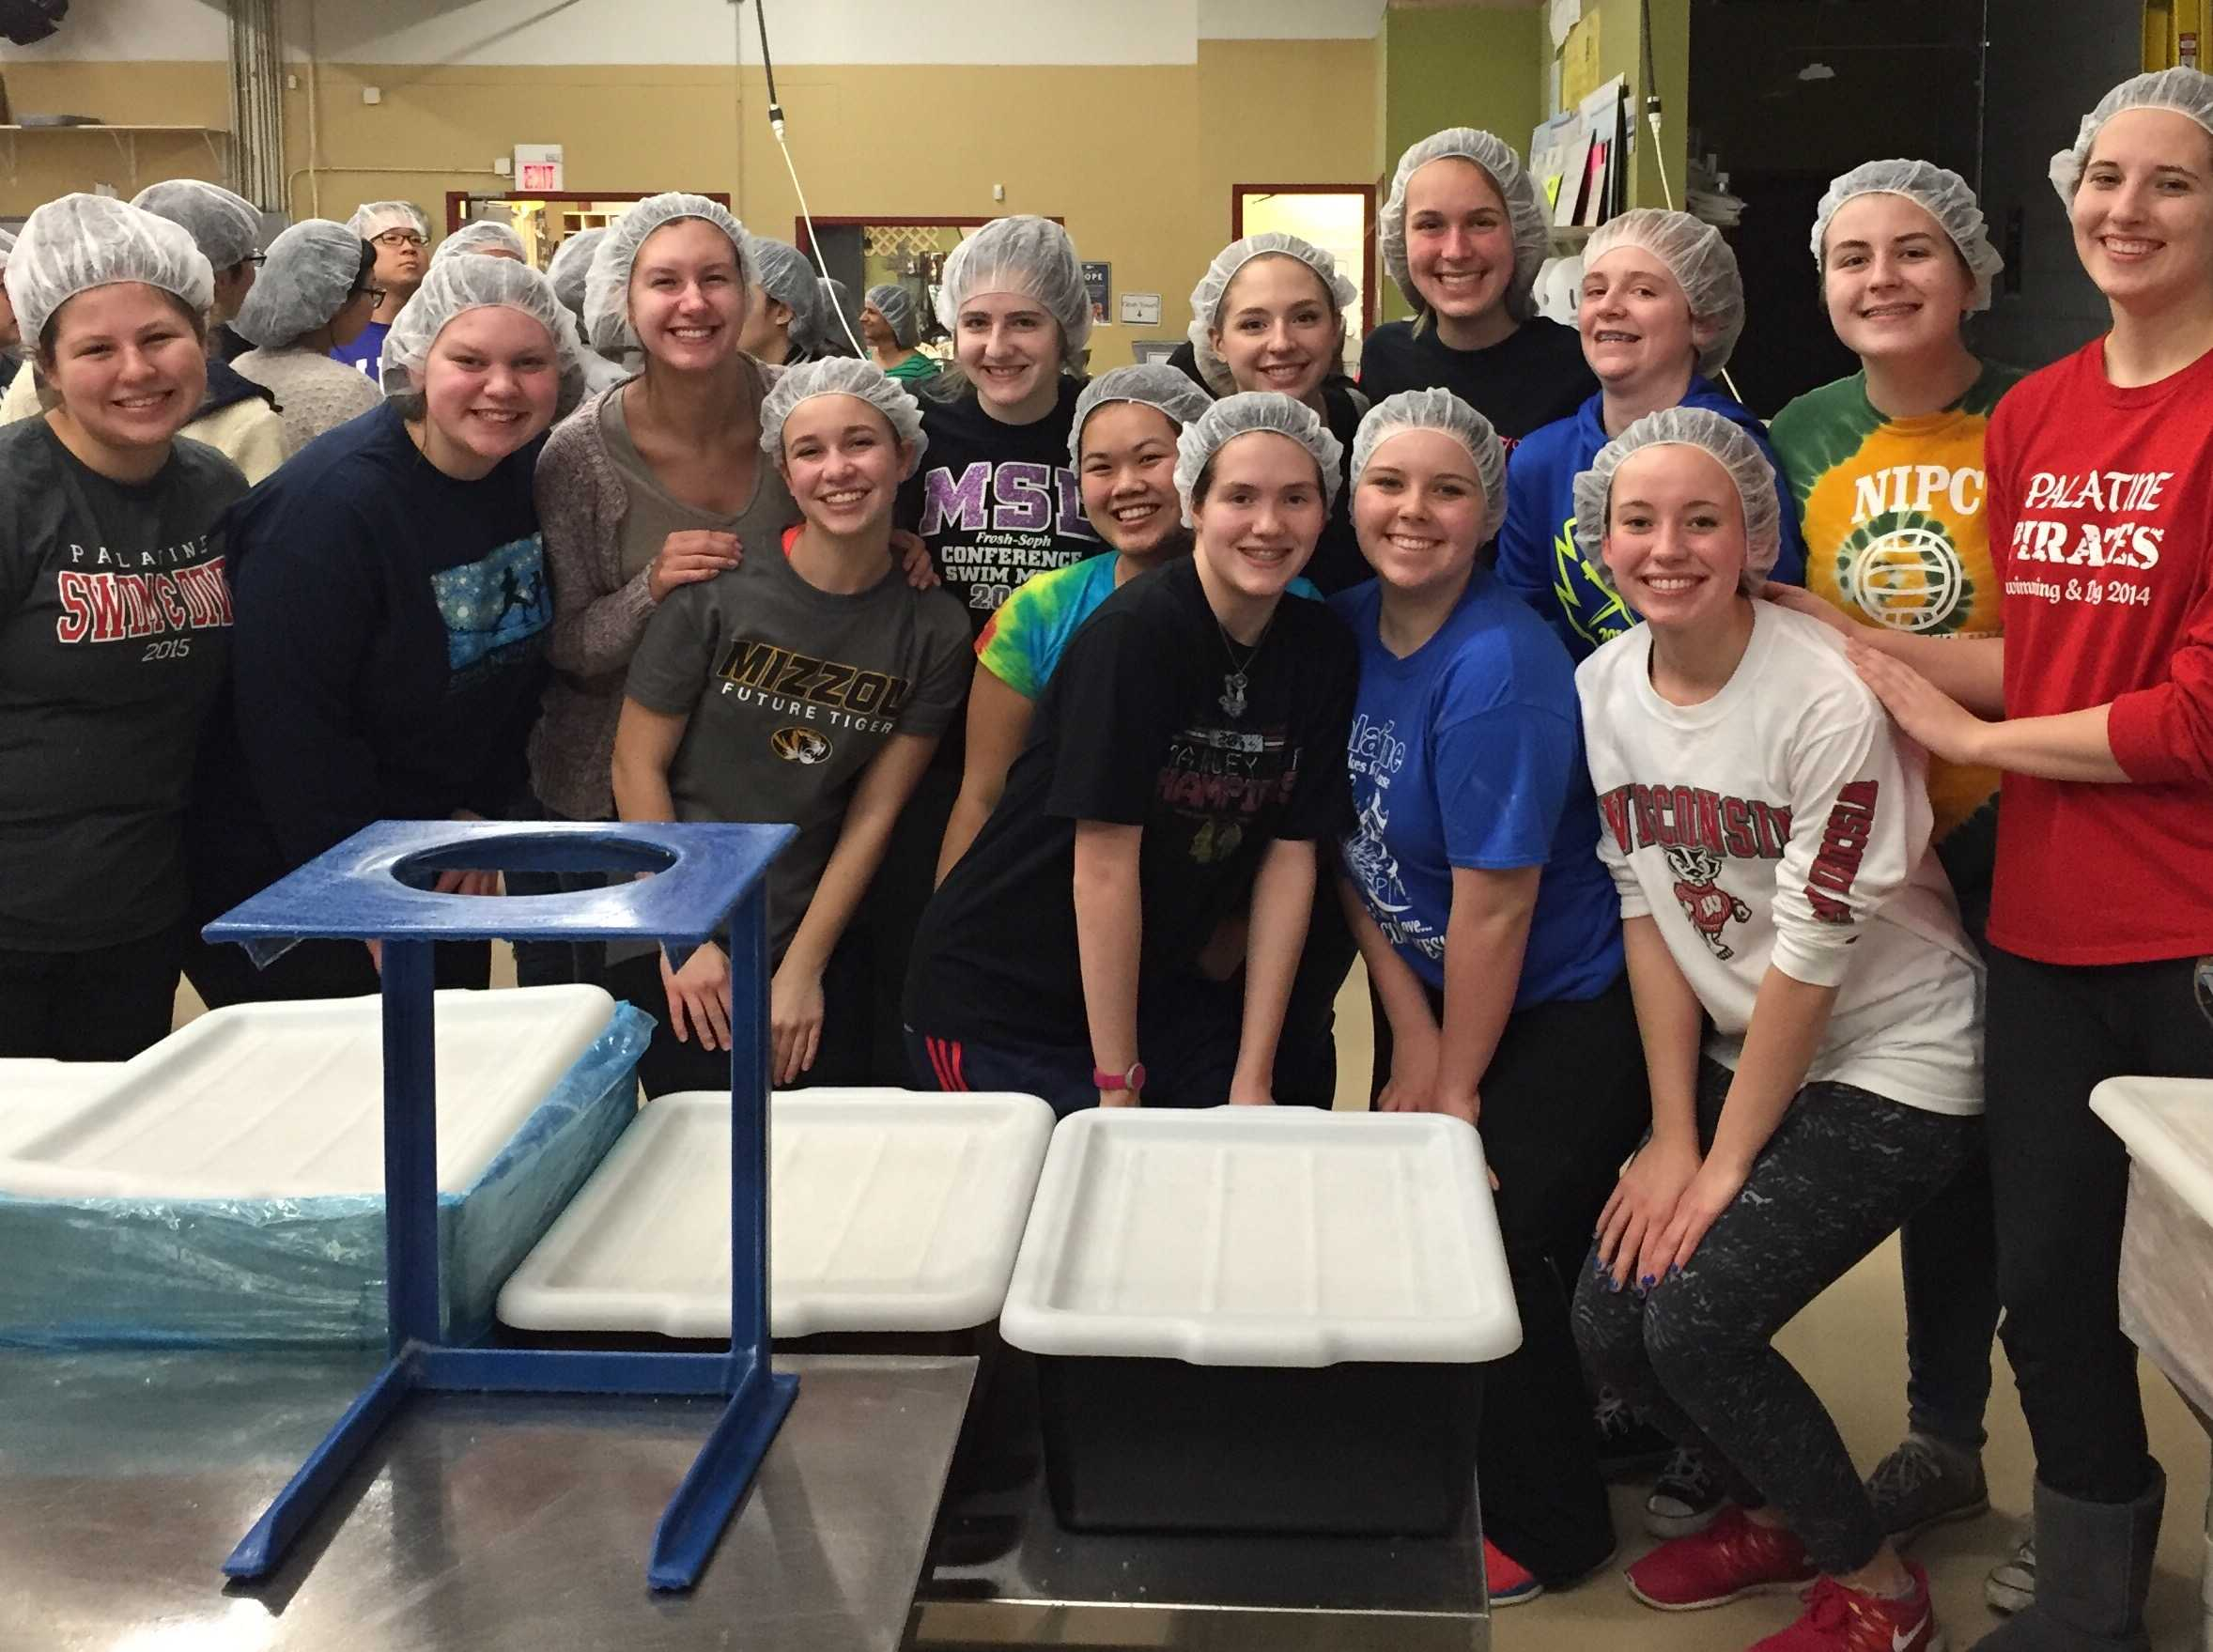 Service Club smiles after finishing their session at Feed My Starving Children, a nonprofit organization dedicated to ending worldwide hunger.